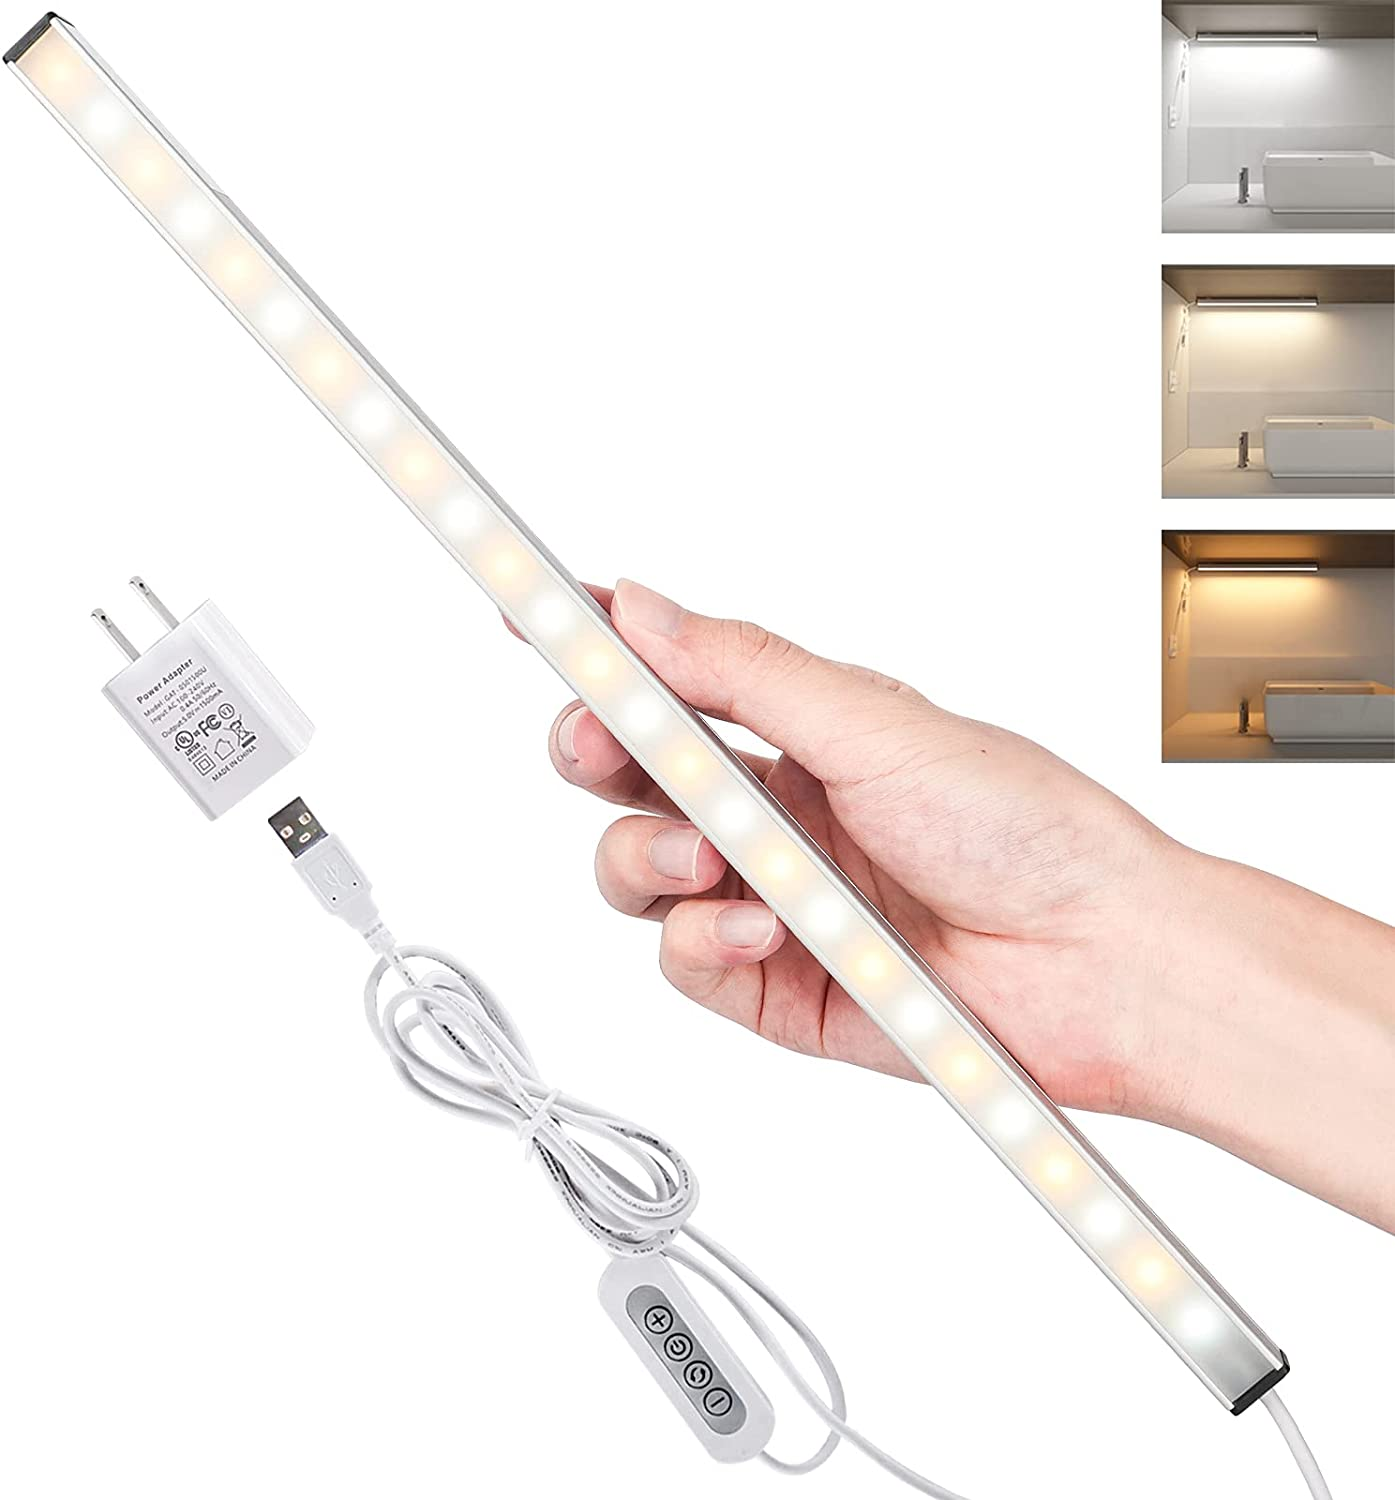 Vovamo LED Under Cabinet Lighting Bar Dimmable,Built-in Magnets, 3 Color Temperature, 14.5 inches, USB Powered Under Counter Lighting fixtures, LED Closet Light,Kitchen Light.(with UL Plug)